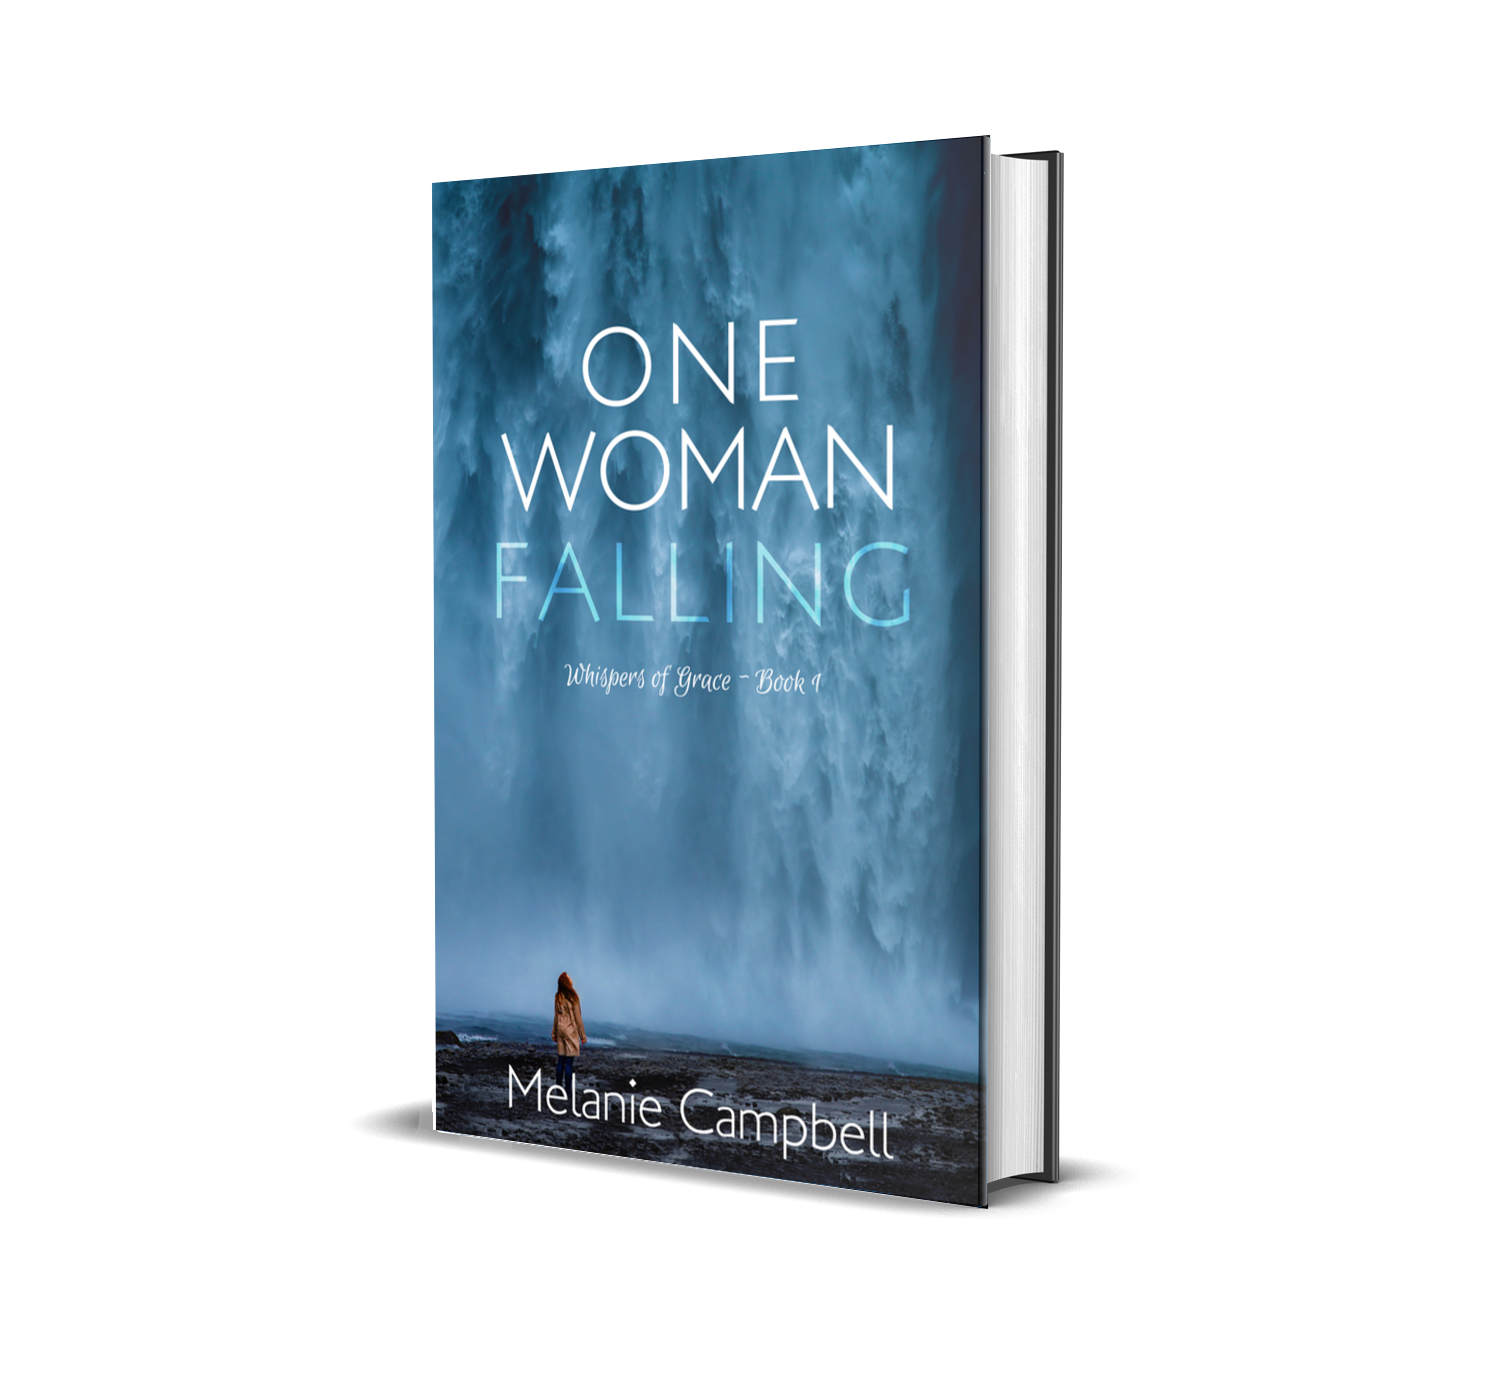 One Woman Falling  by Melanie Campbell